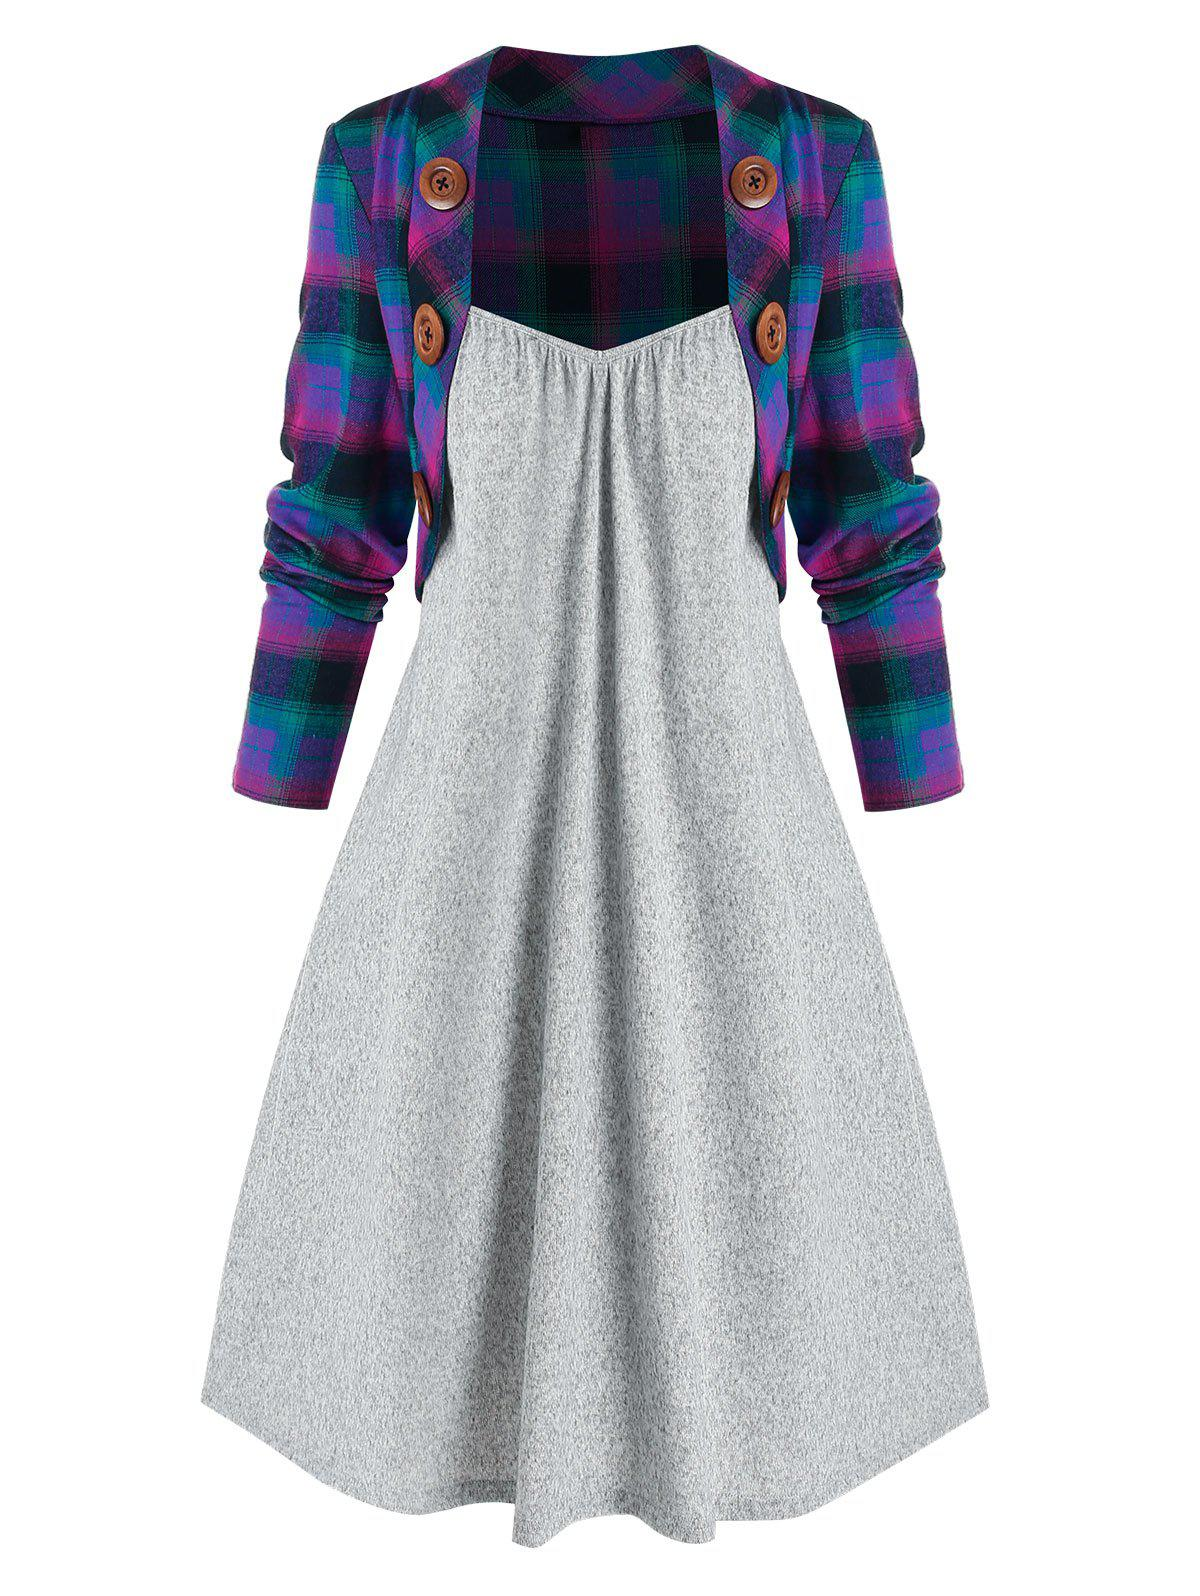 Mock Button Plaid Pattern Twofer Dress - multicolor A 2XL